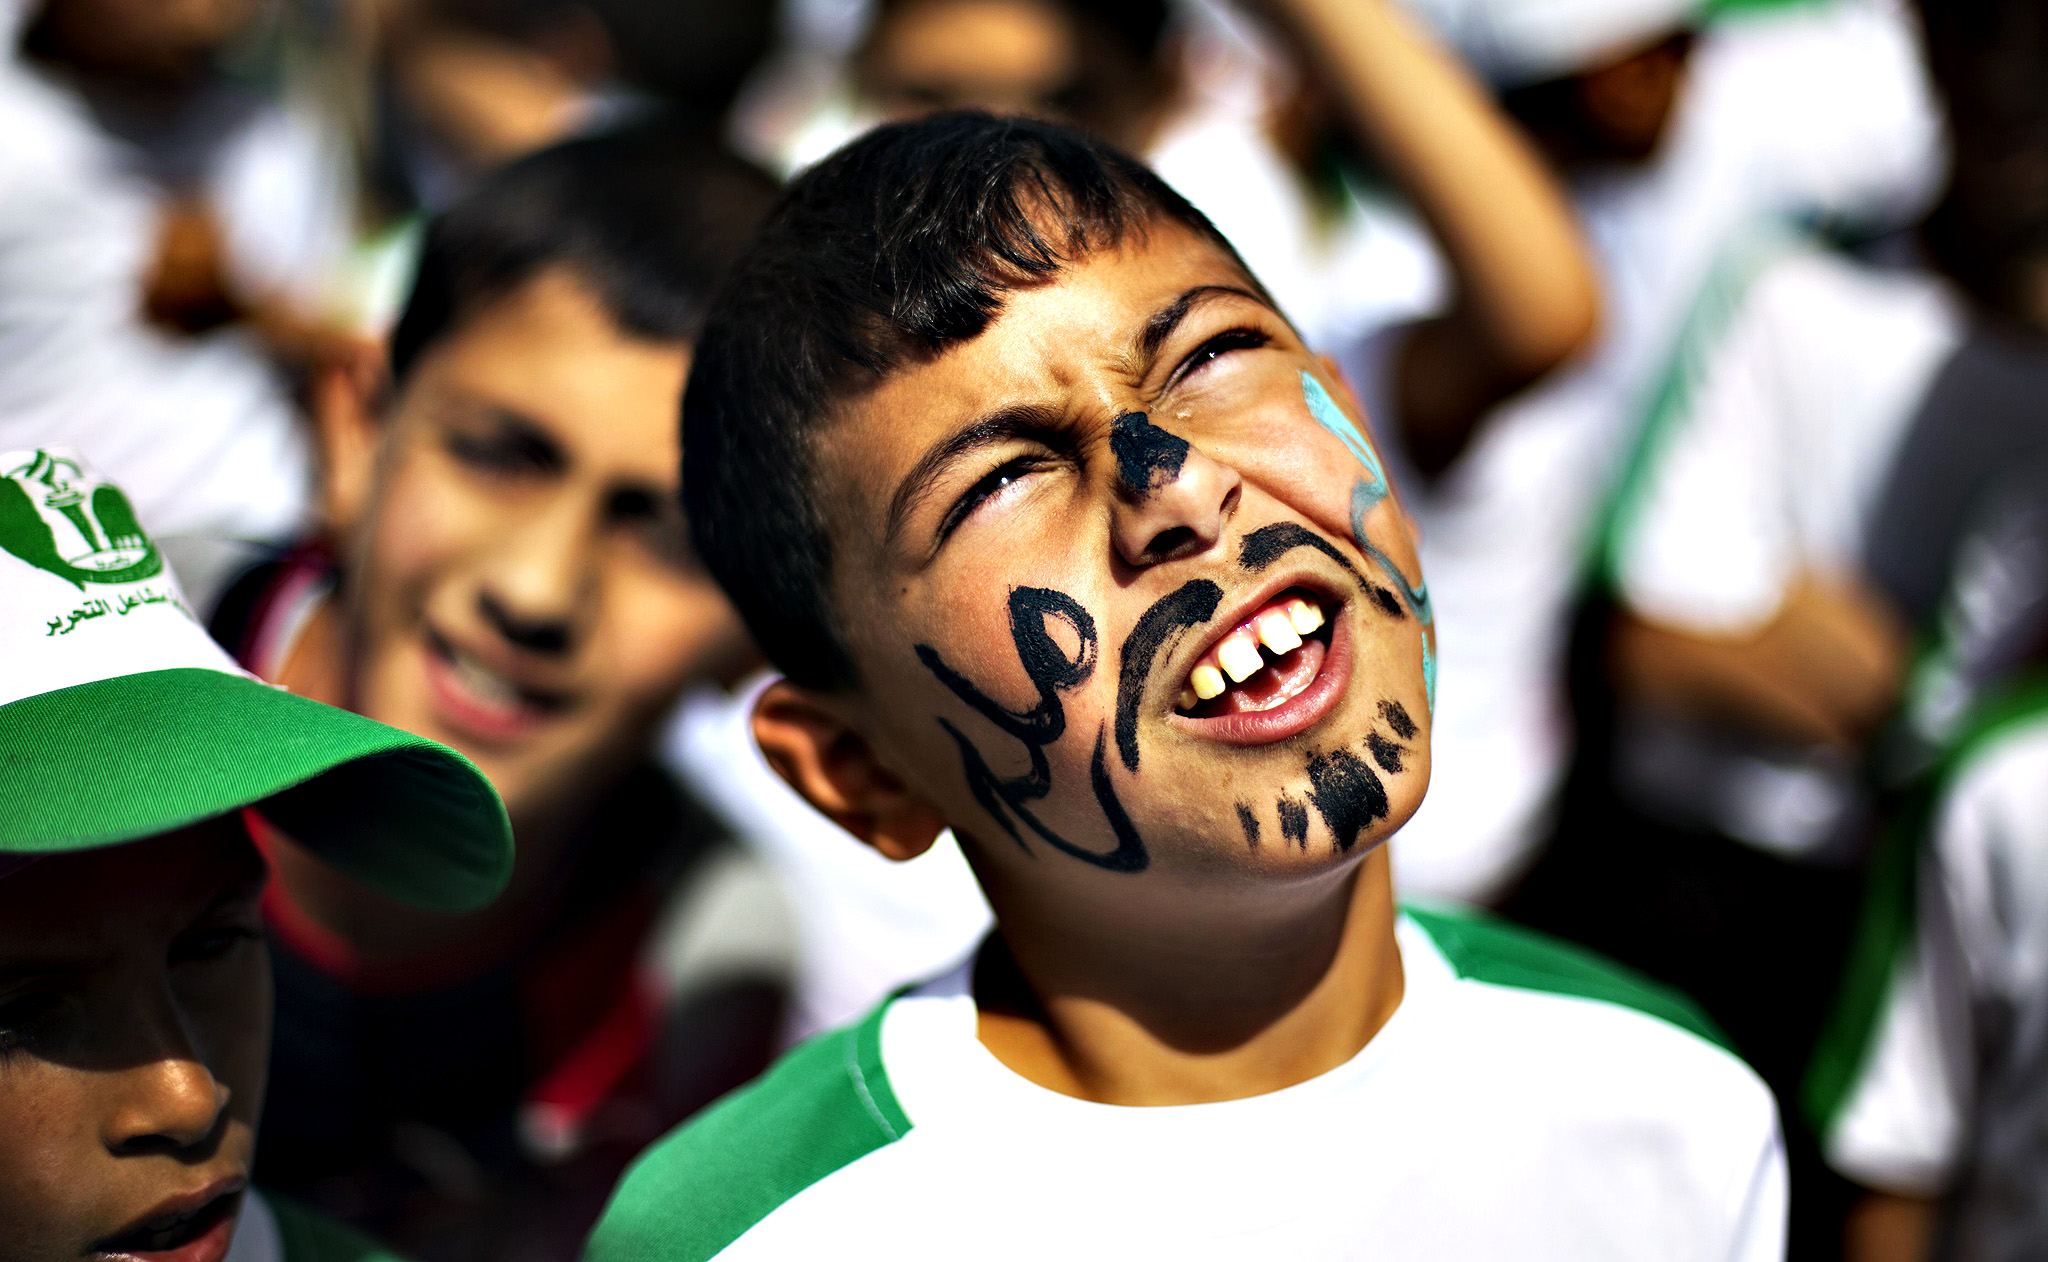 Palestinian children take part in a summer camp organized by Hamas on June 3, 2014. Thousands of elementary school students in the Gaza Strip are going to Hamas summer camps, in which they take part in recreational activities and participate in political demonstrations in solidarity with Palestinian prisoners held in Israeli jails.